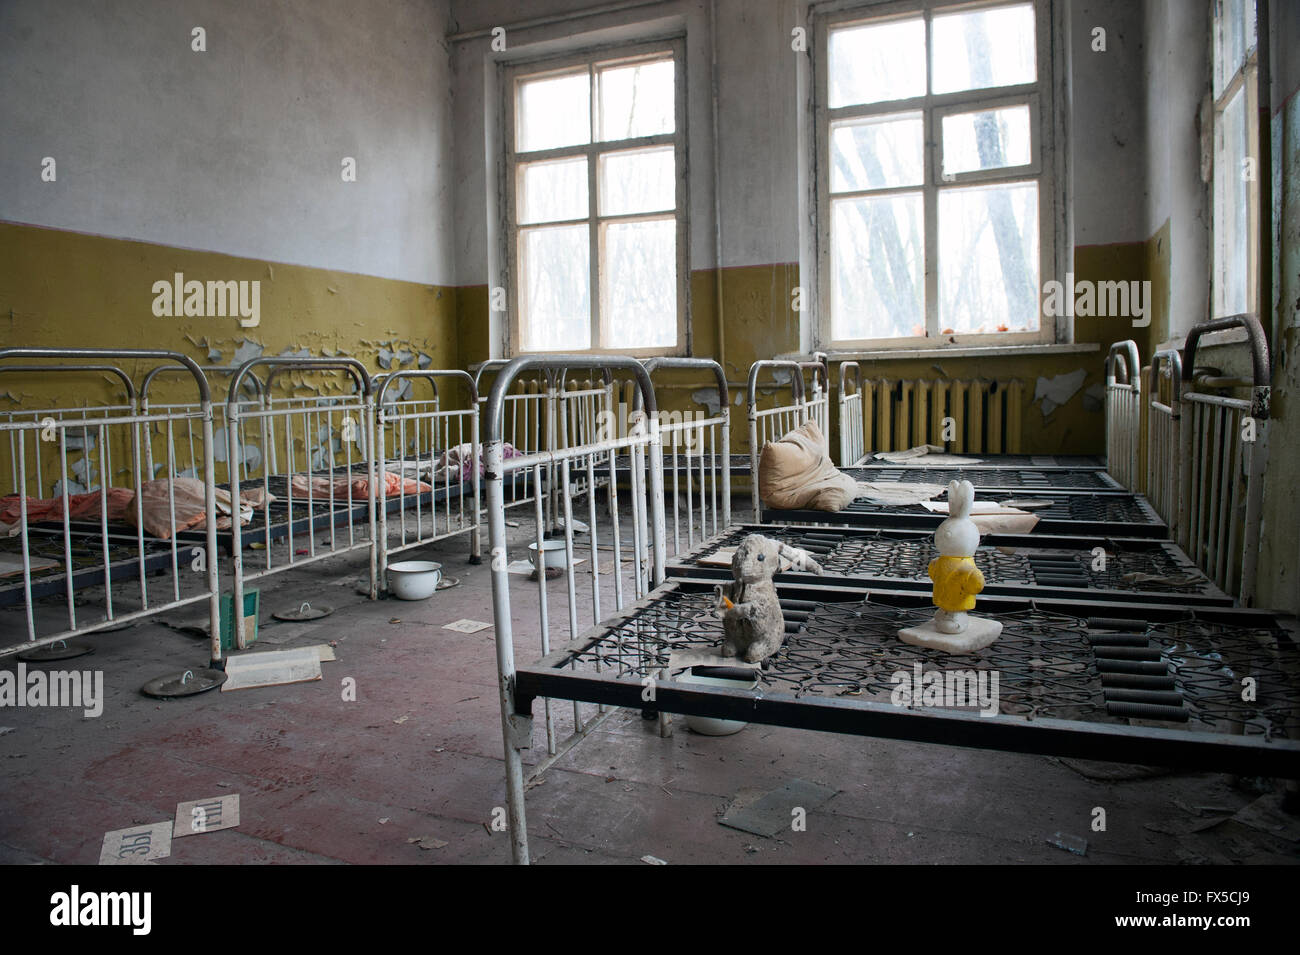 Kindergarten/nursery the abandoned city of Pripyat, Ukraine. Pripyat was abandoned following the Chernobyl nuclear - Stock Image